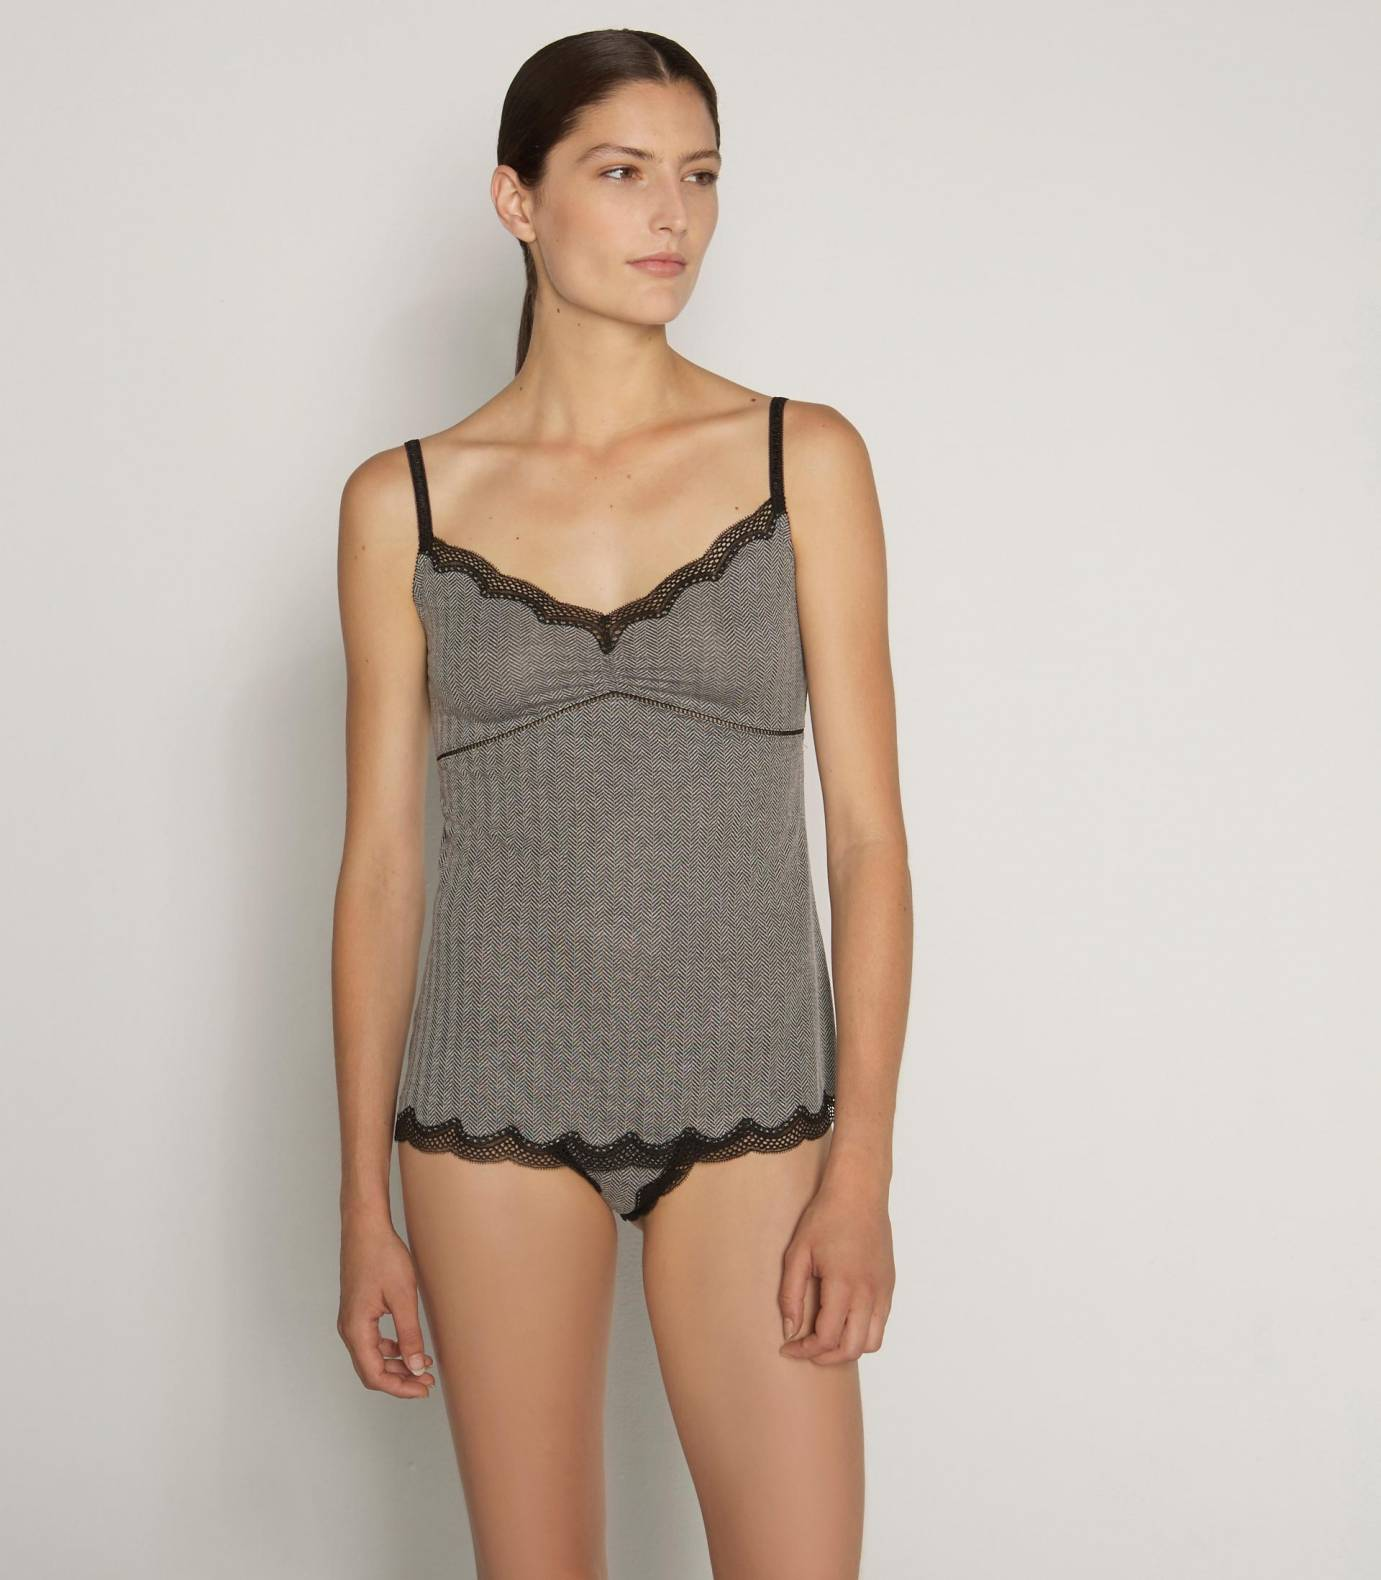 Short herringbone negligee